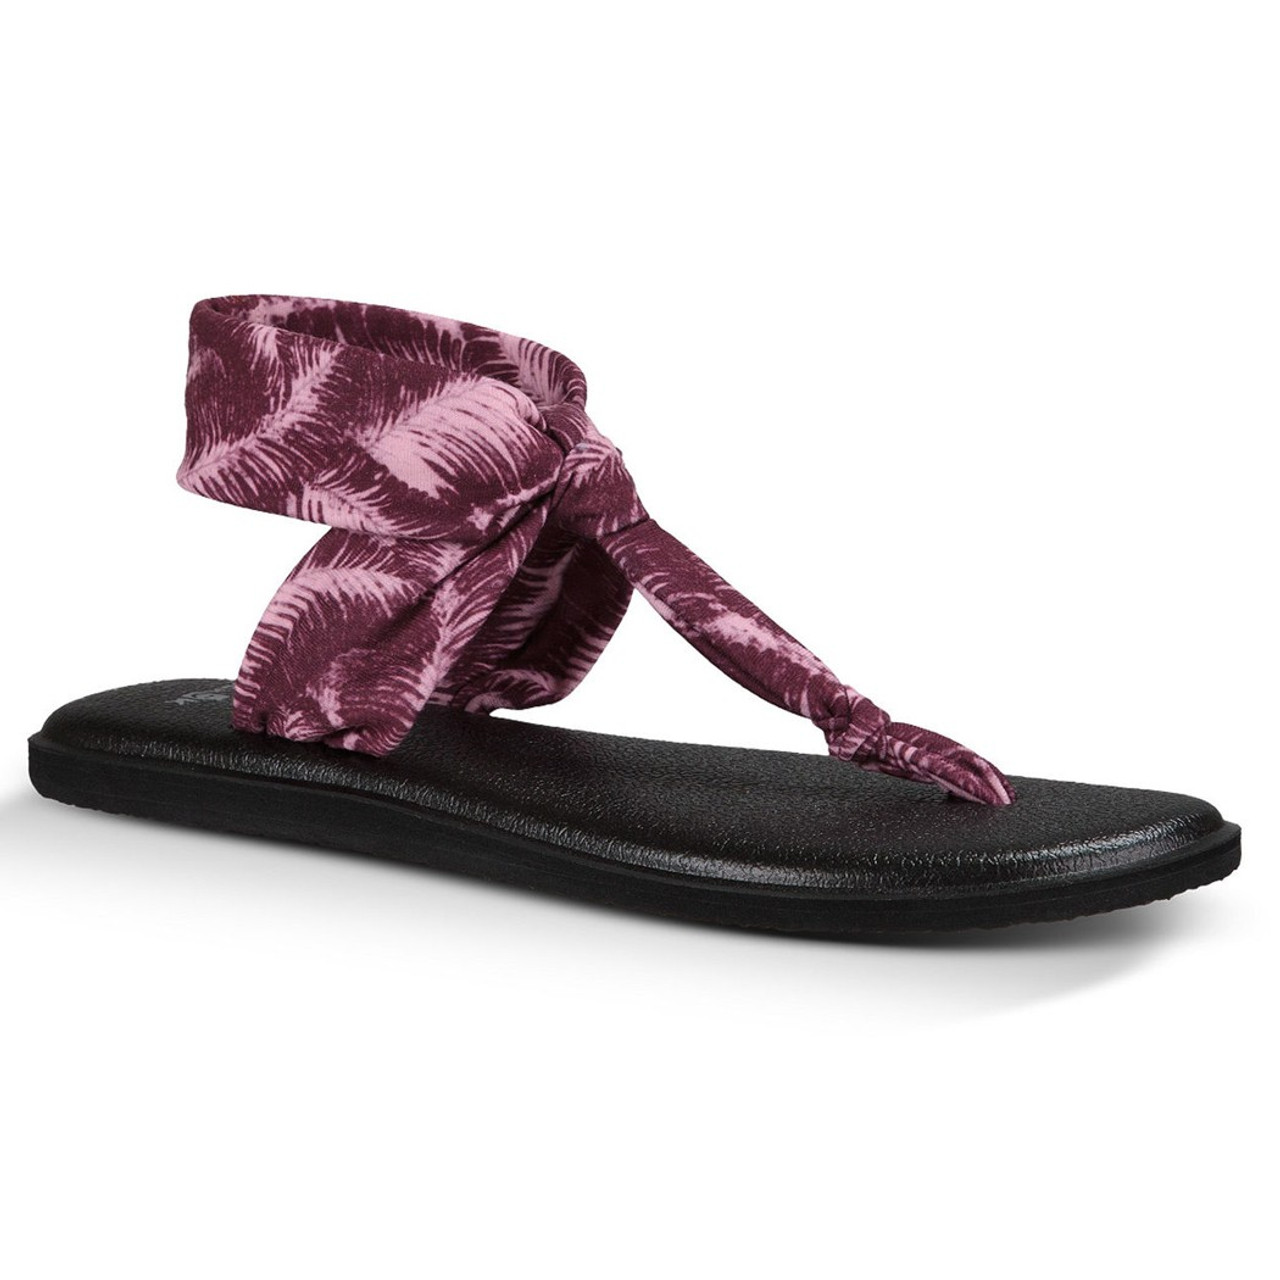 6a85a2a56 Sanuk Women s Flip Flop - Yoga Sling Ella Prints - Rumba Red Hazy Palms -  Surf and Dirt